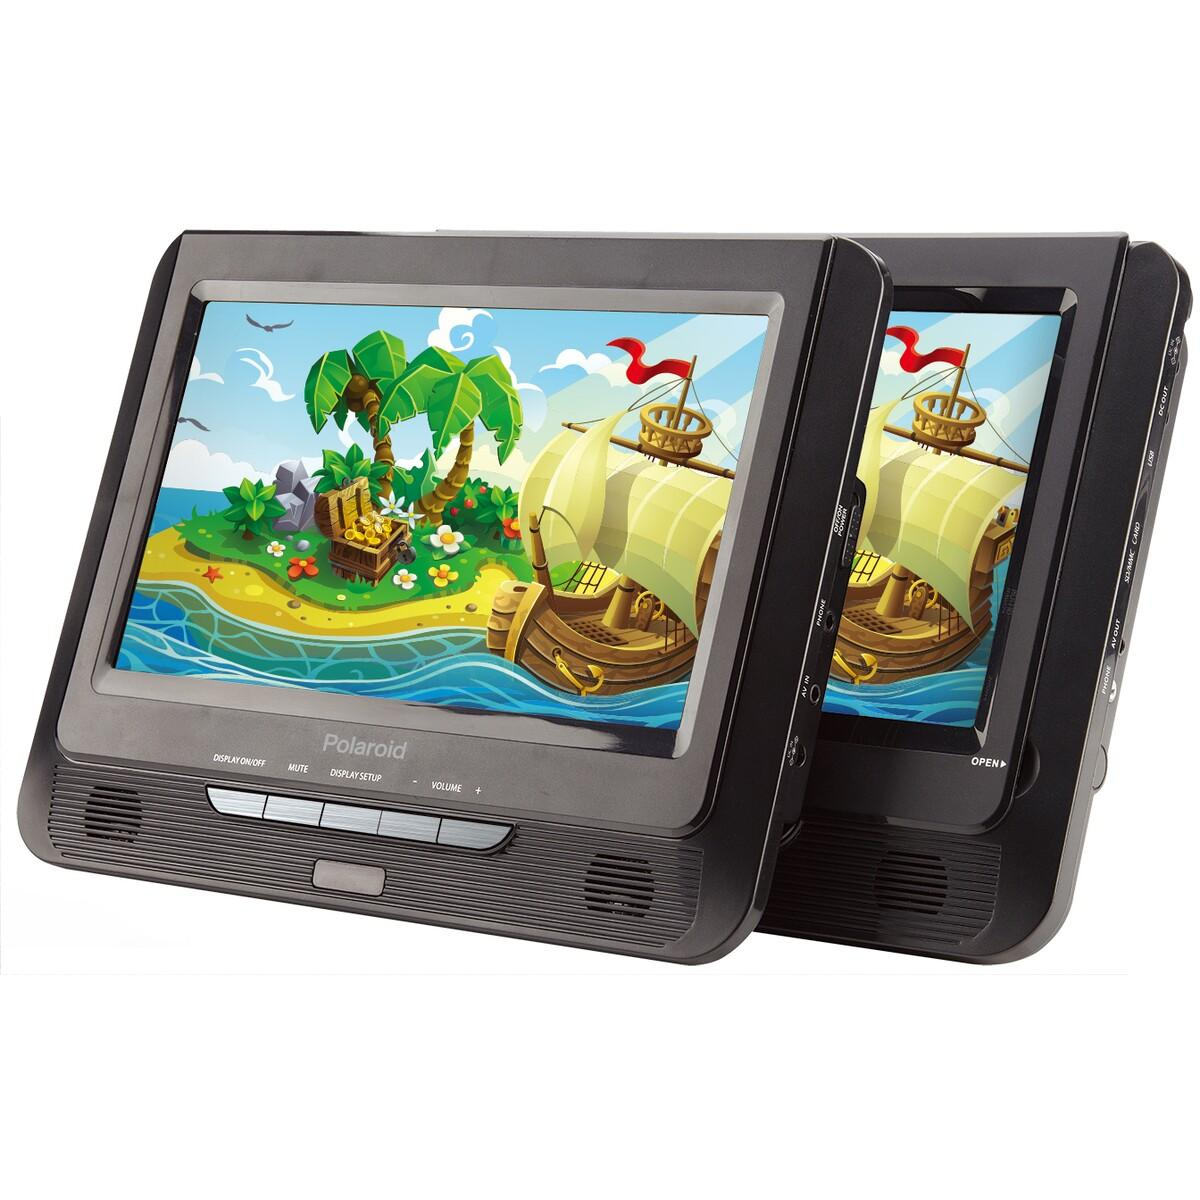 "Polaroid 9"" Dual Screen DVD Player"